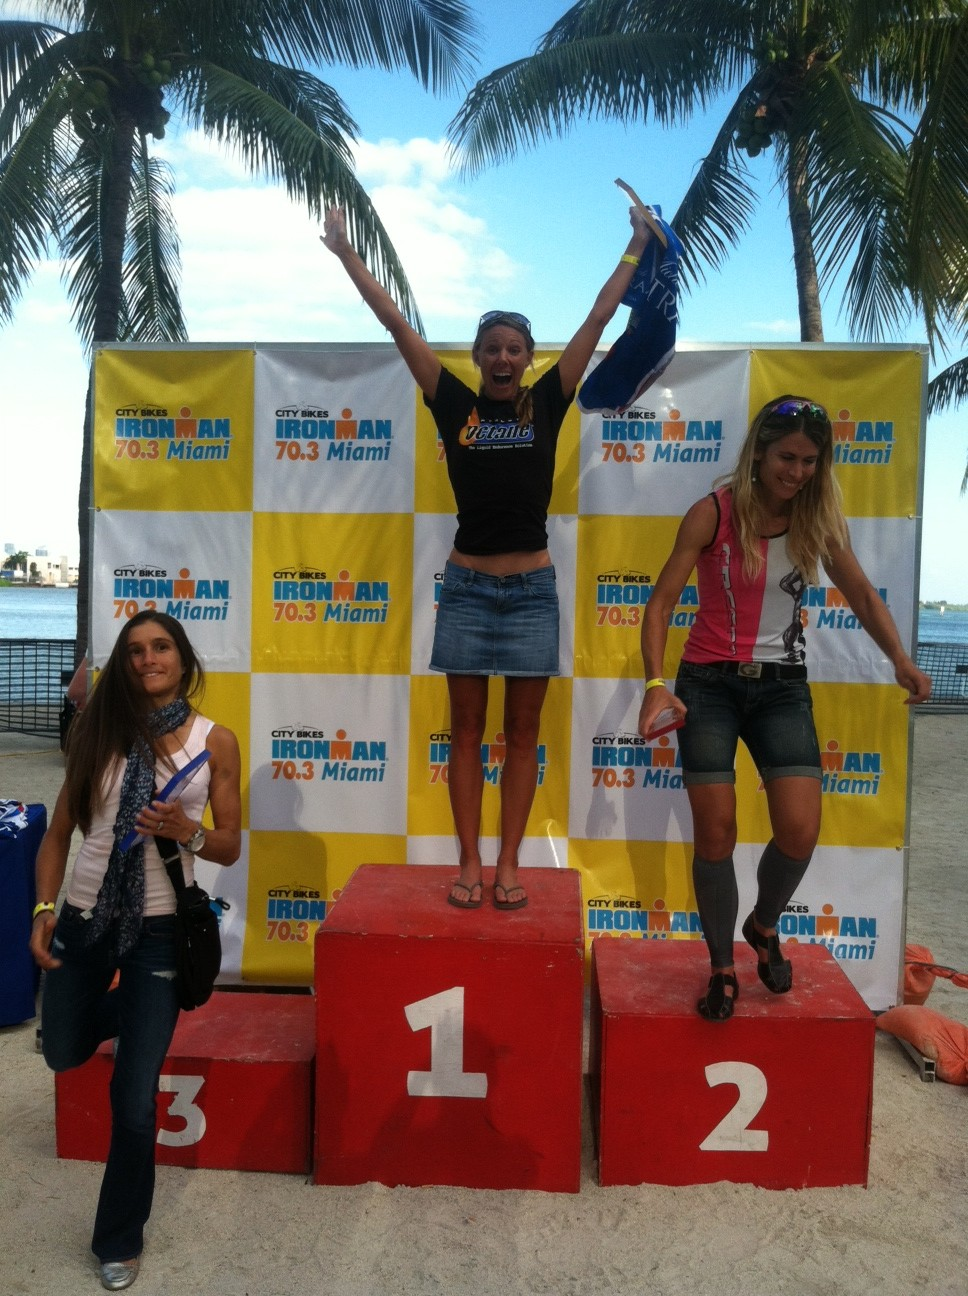 Sarah Lieneke Reports From The Podium (Miami 70.3)